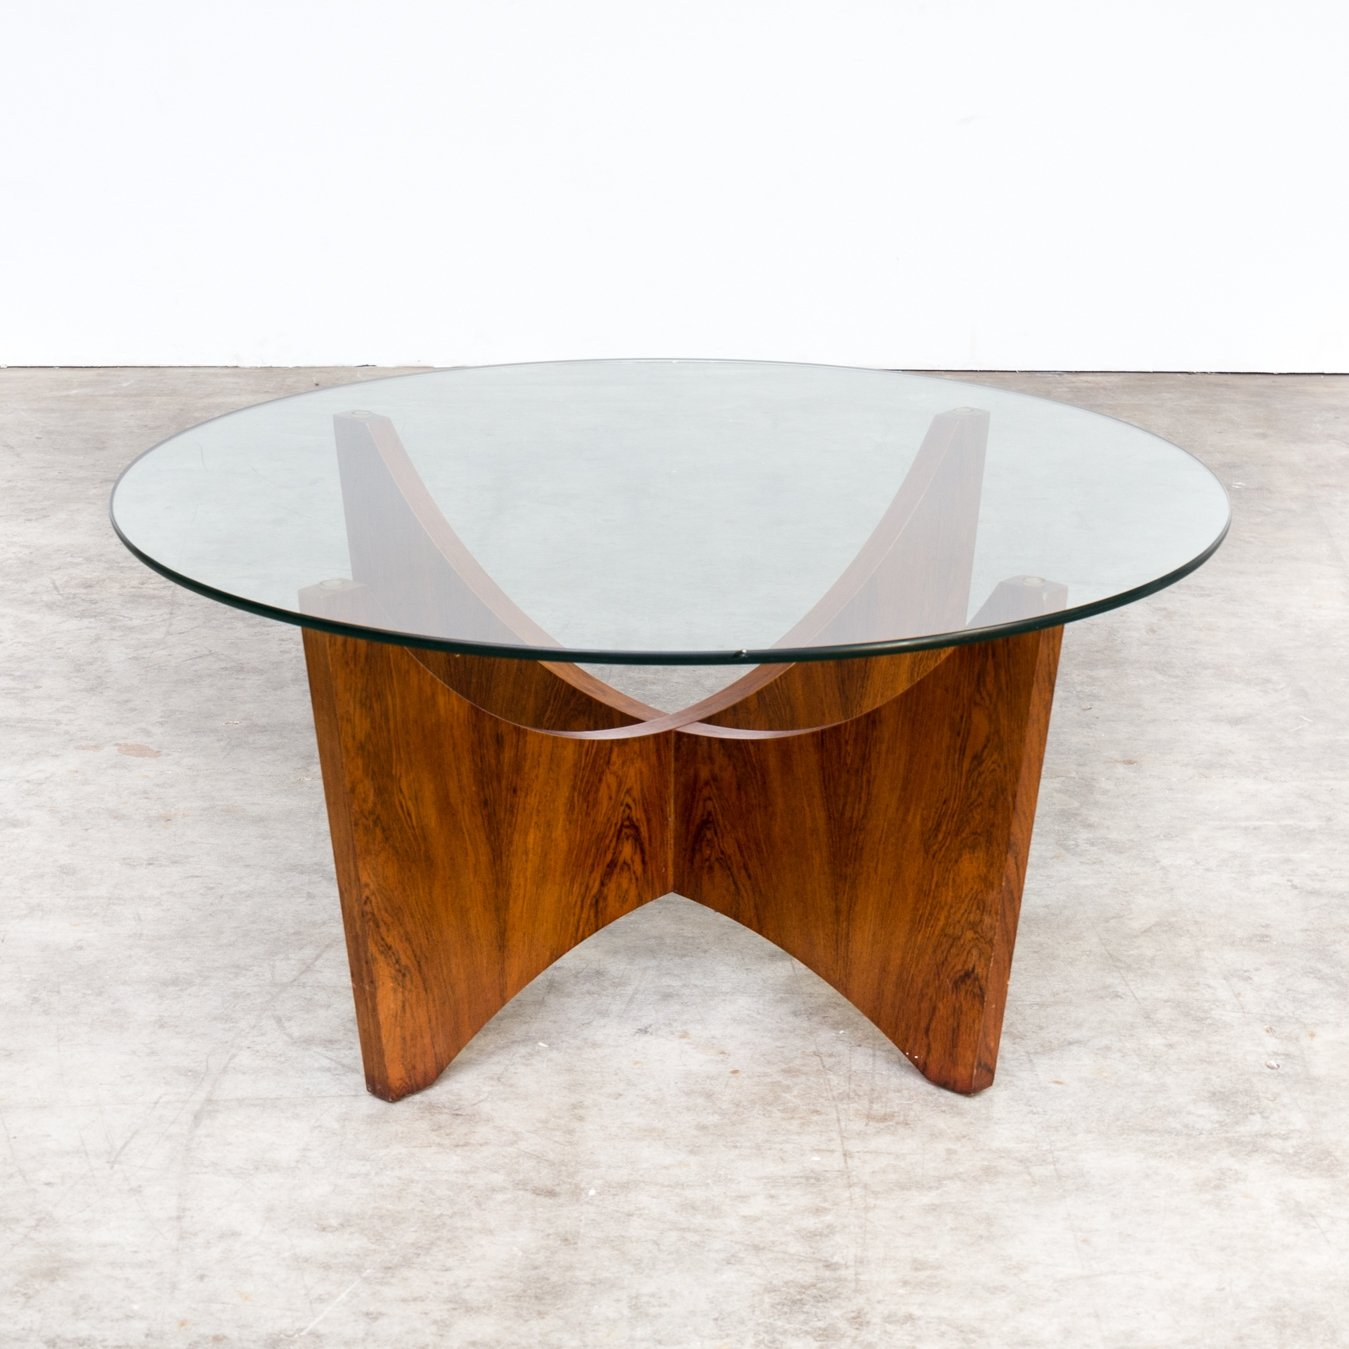 Swell 70S Round Wood Framed Coffee Table With Glass Table Top Gmtry Best Dining Table And Chair Ideas Images Gmtryco